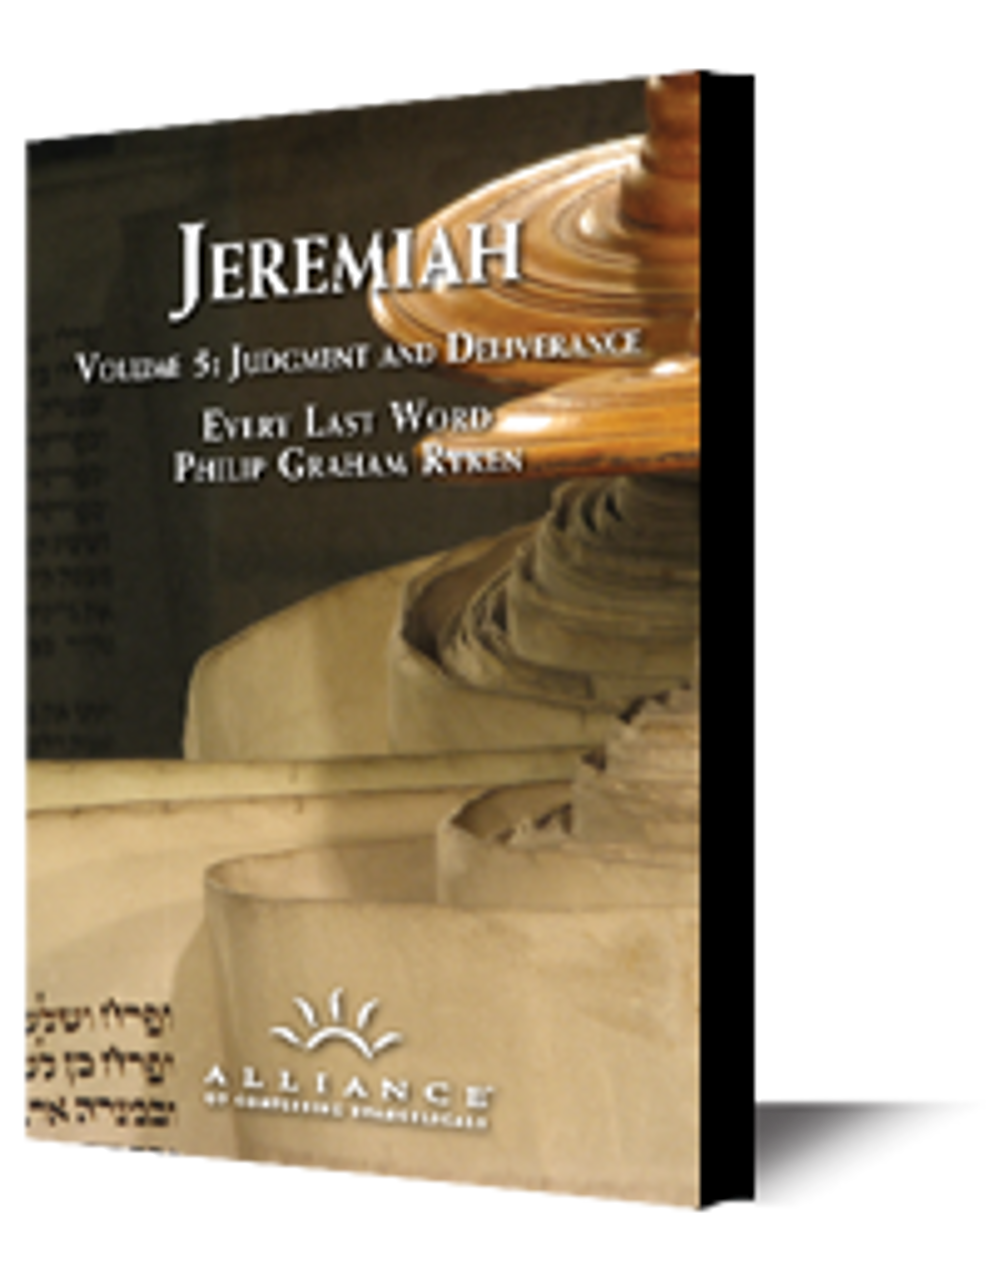 Jeremiah, Volume 5: Judgment and Deliverance (CD Set)